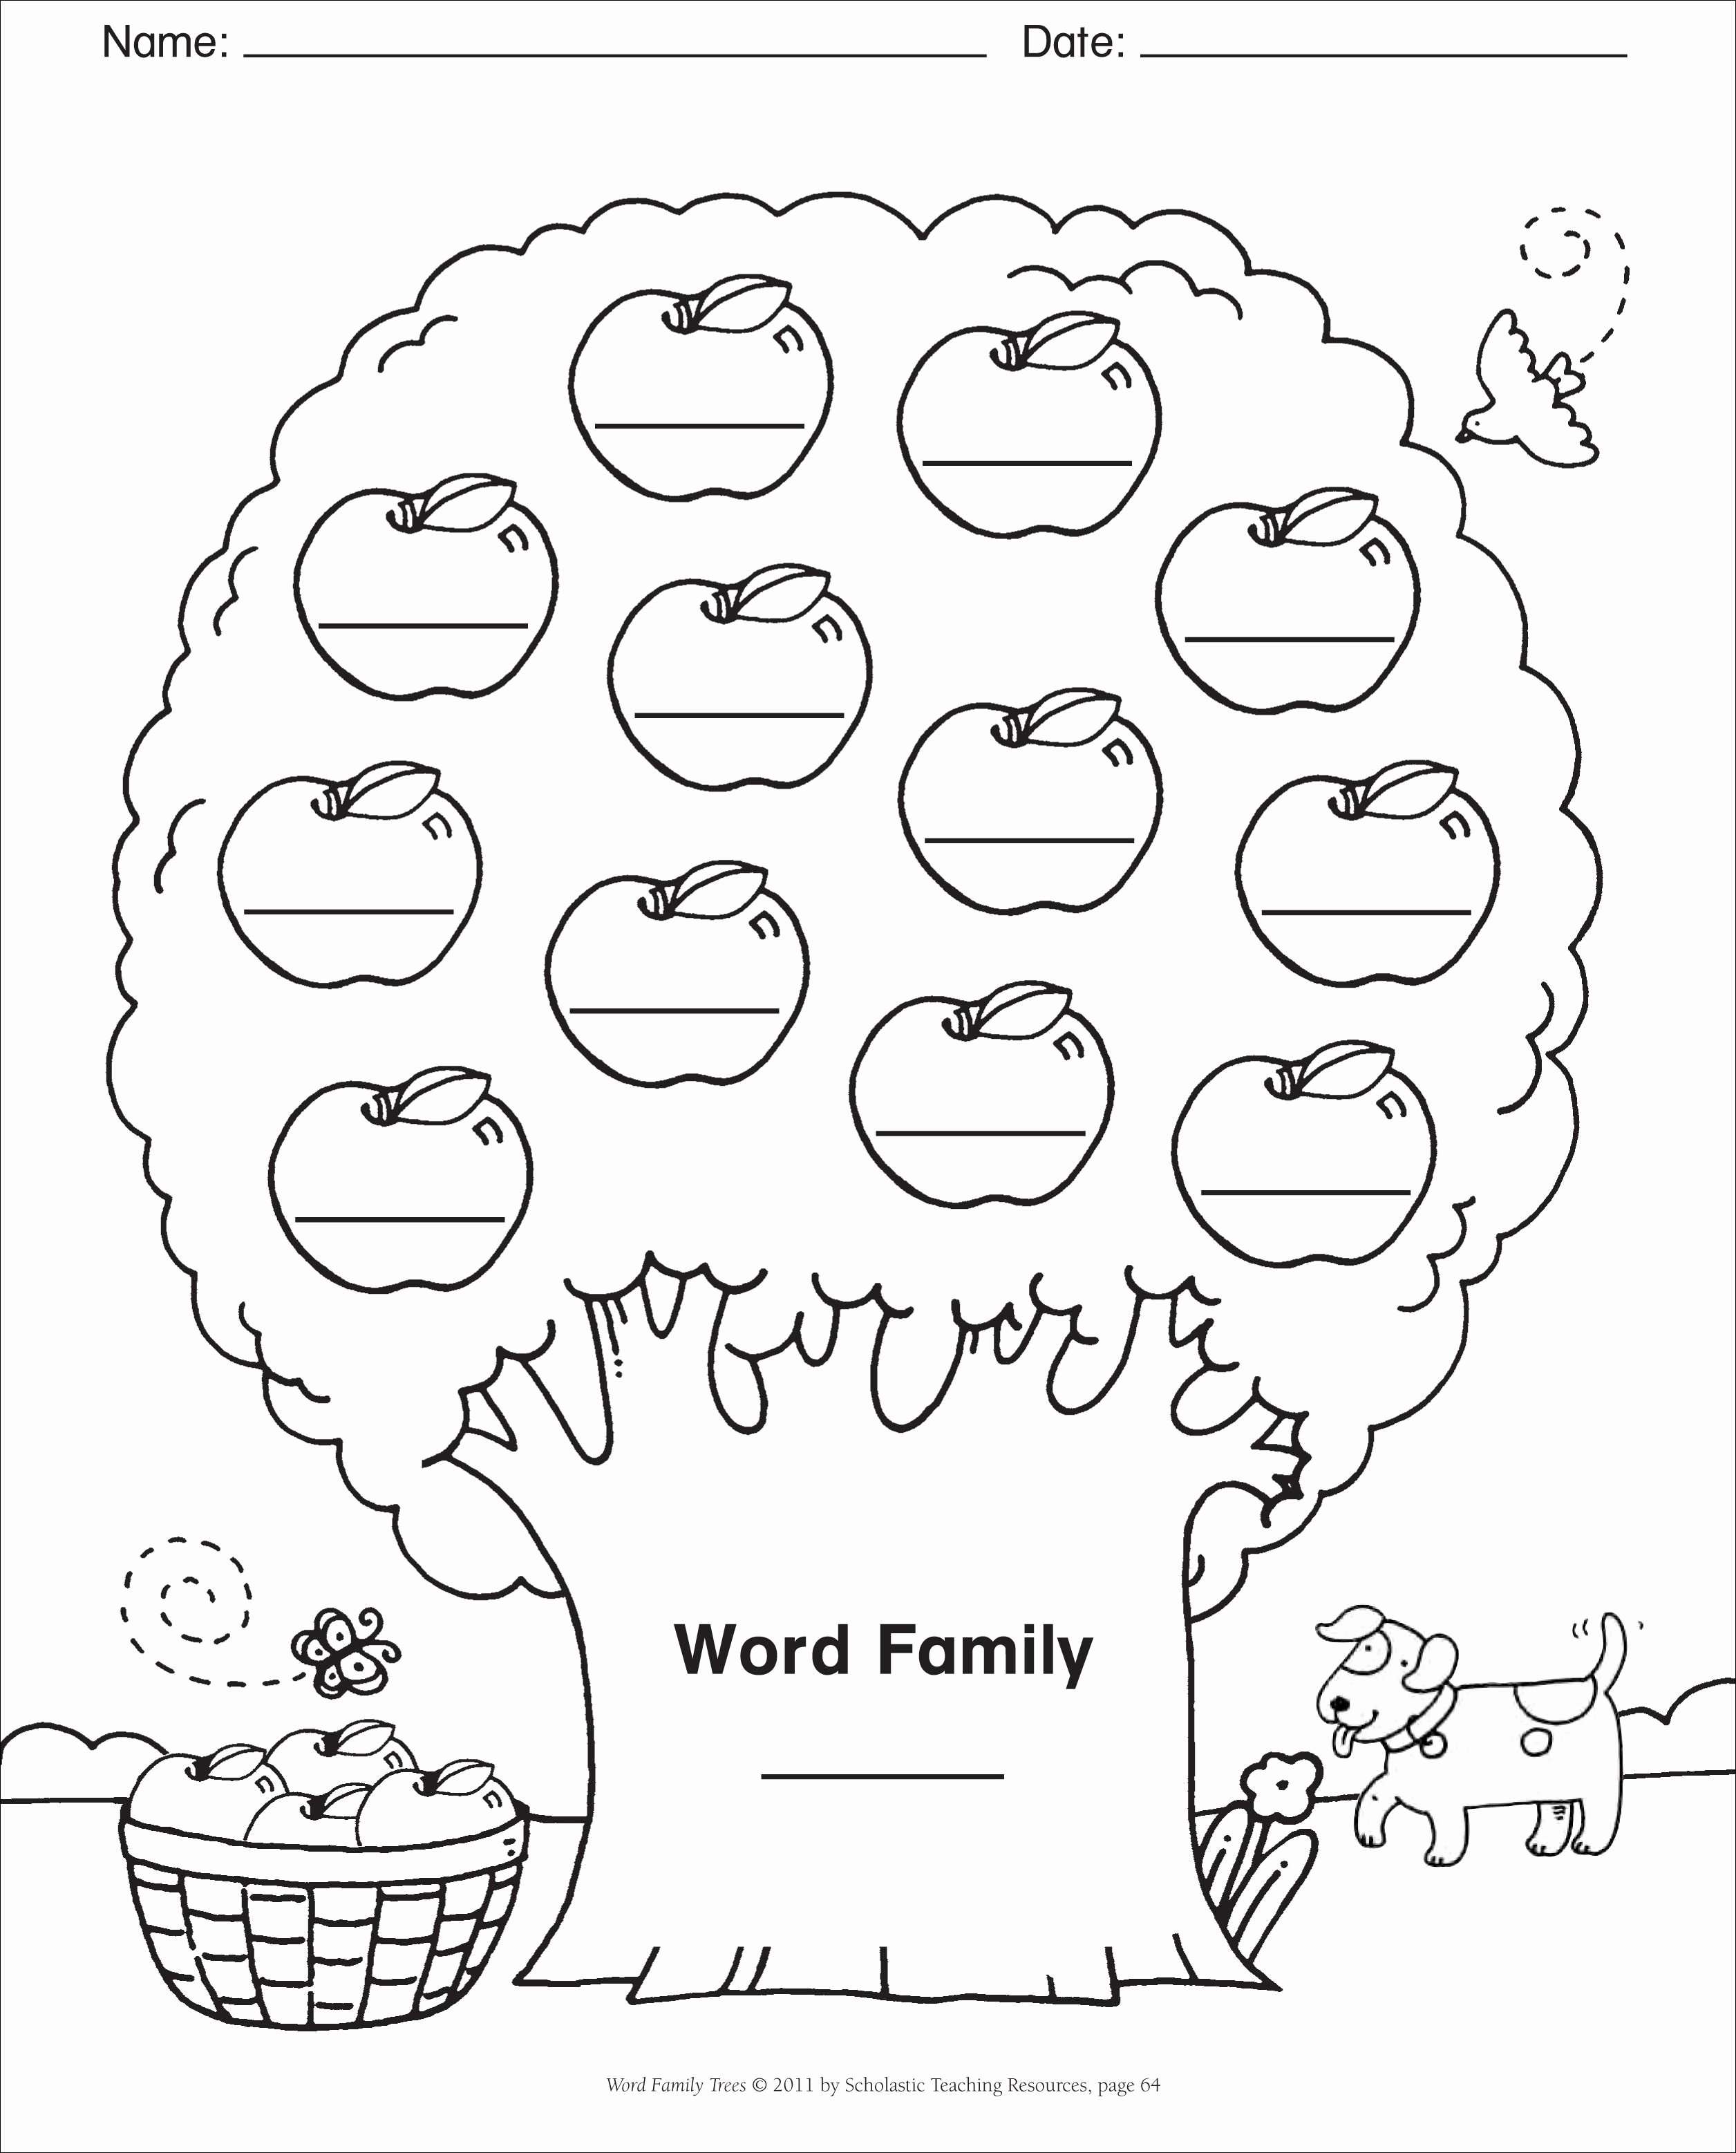 Kindergarten Family Tree Template Best Of Word Family Template